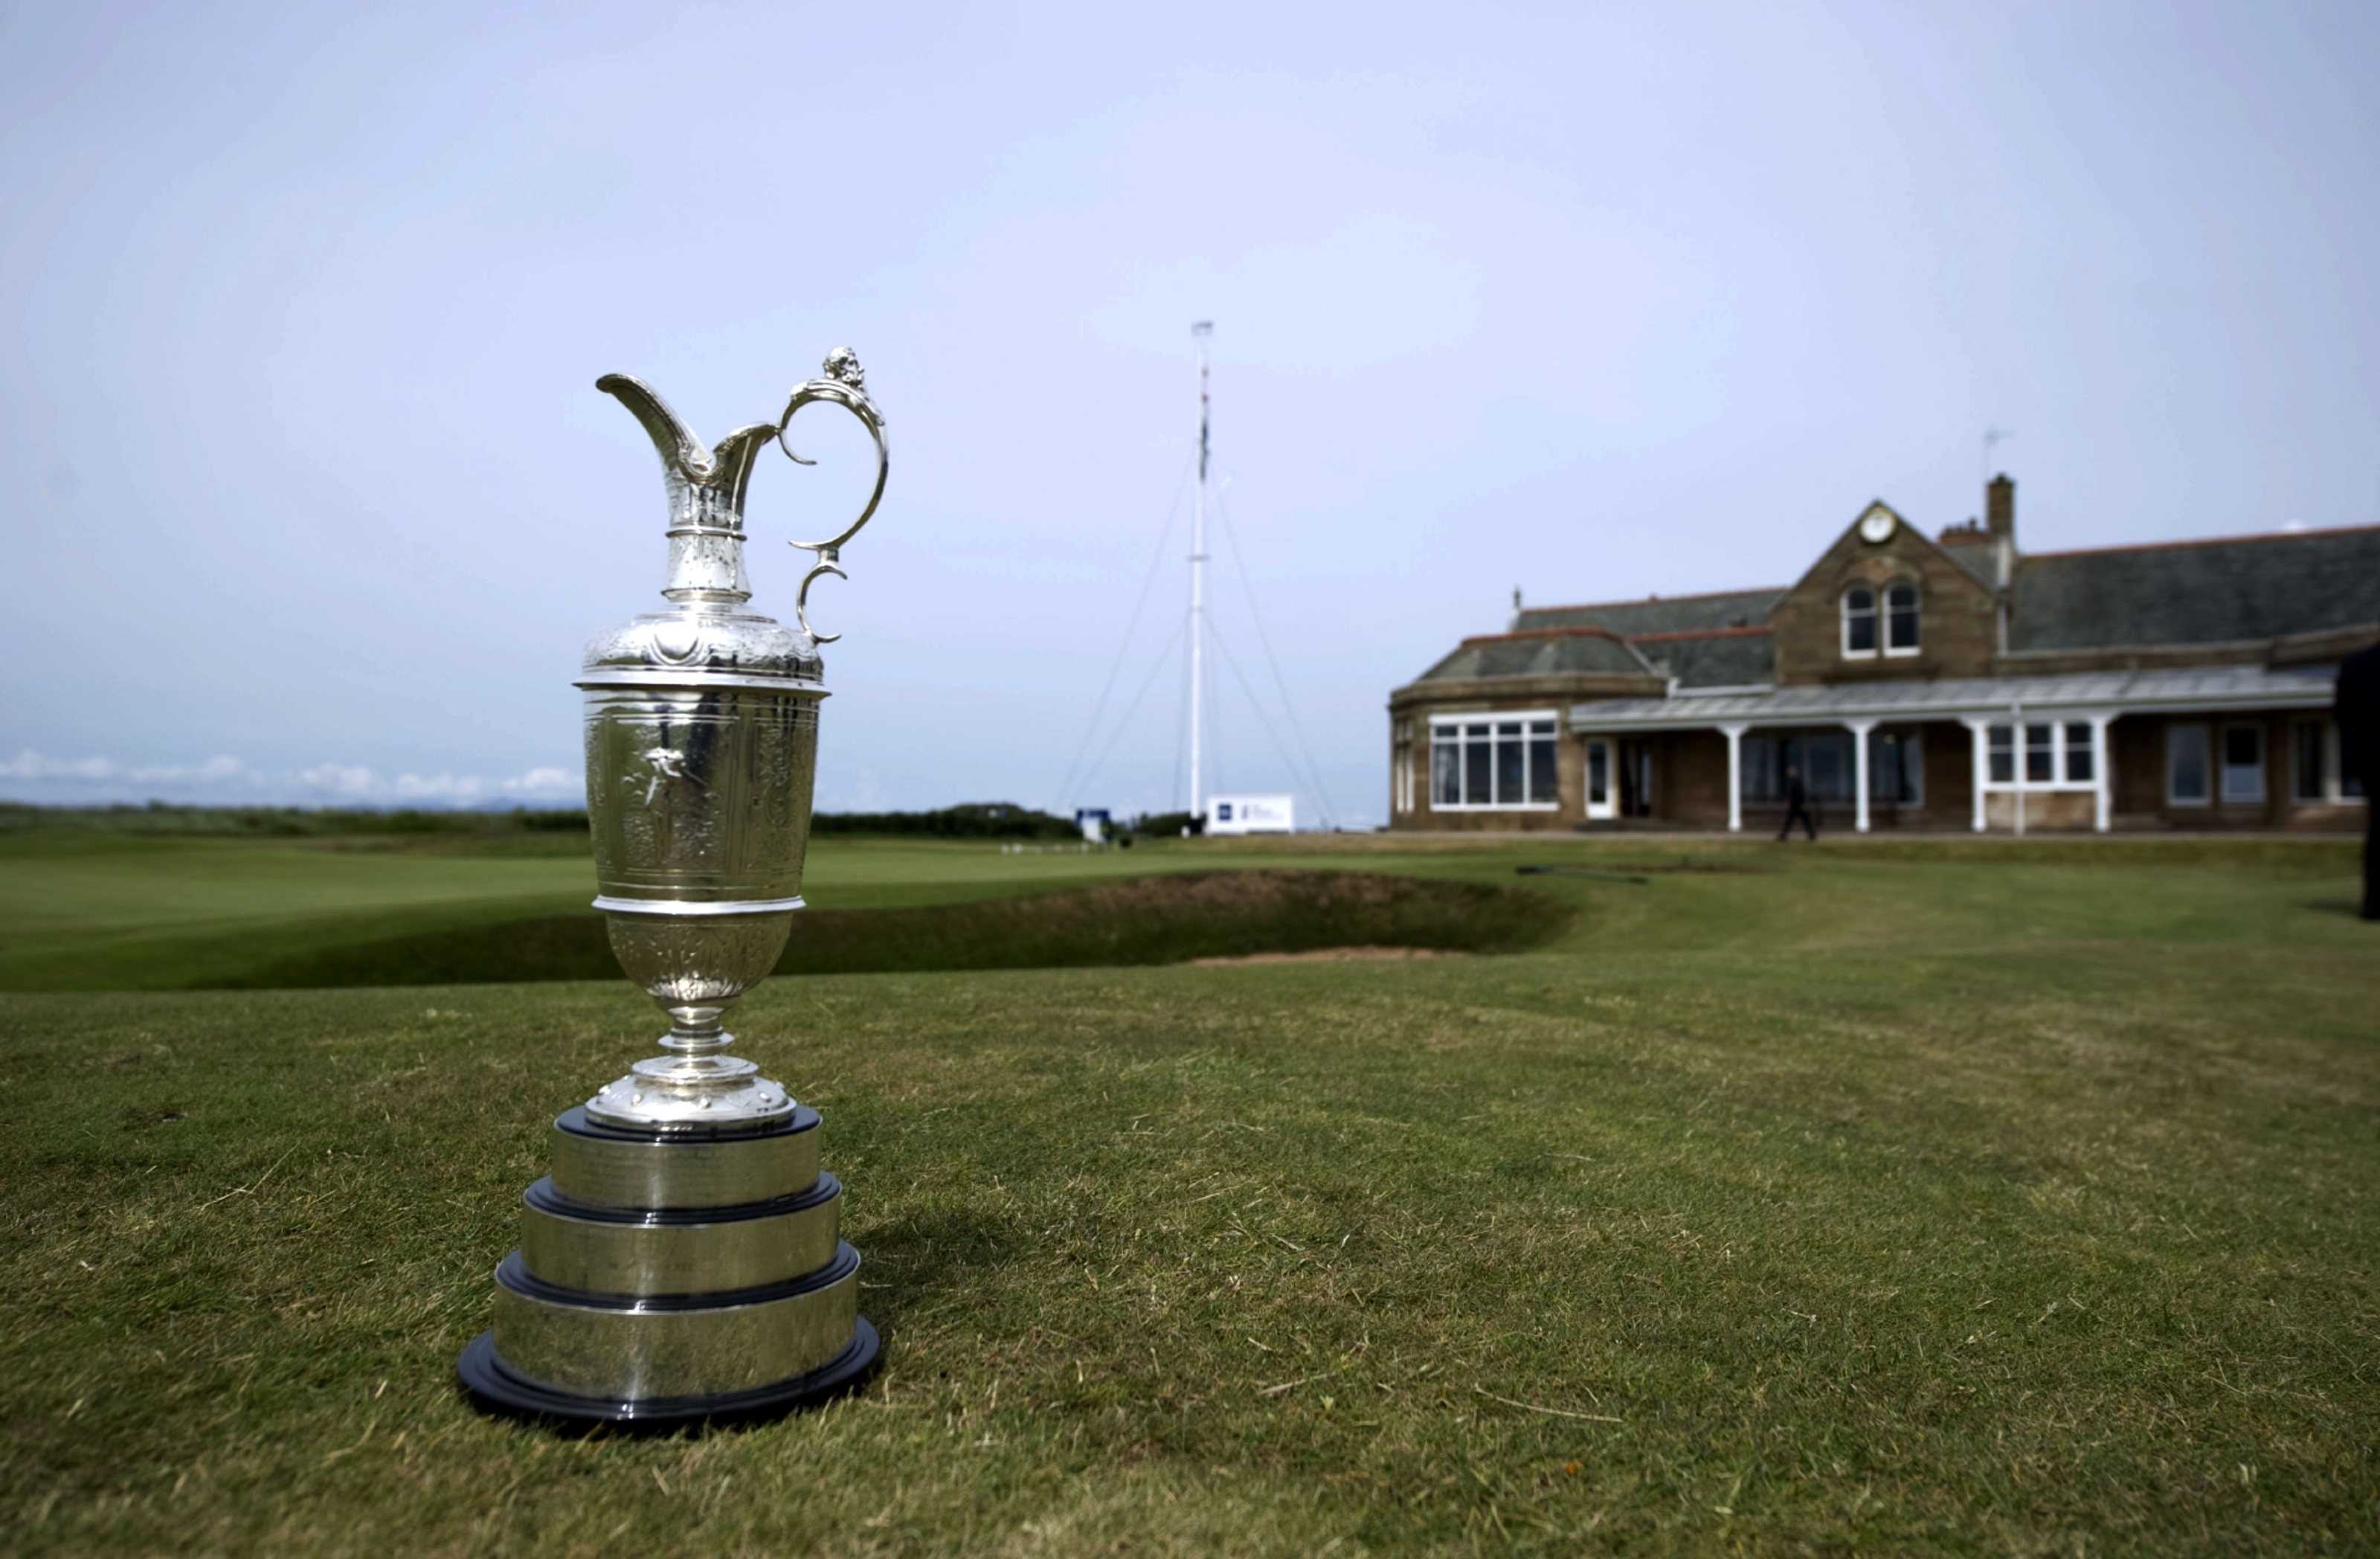 Royal Troon will host the Open in July.